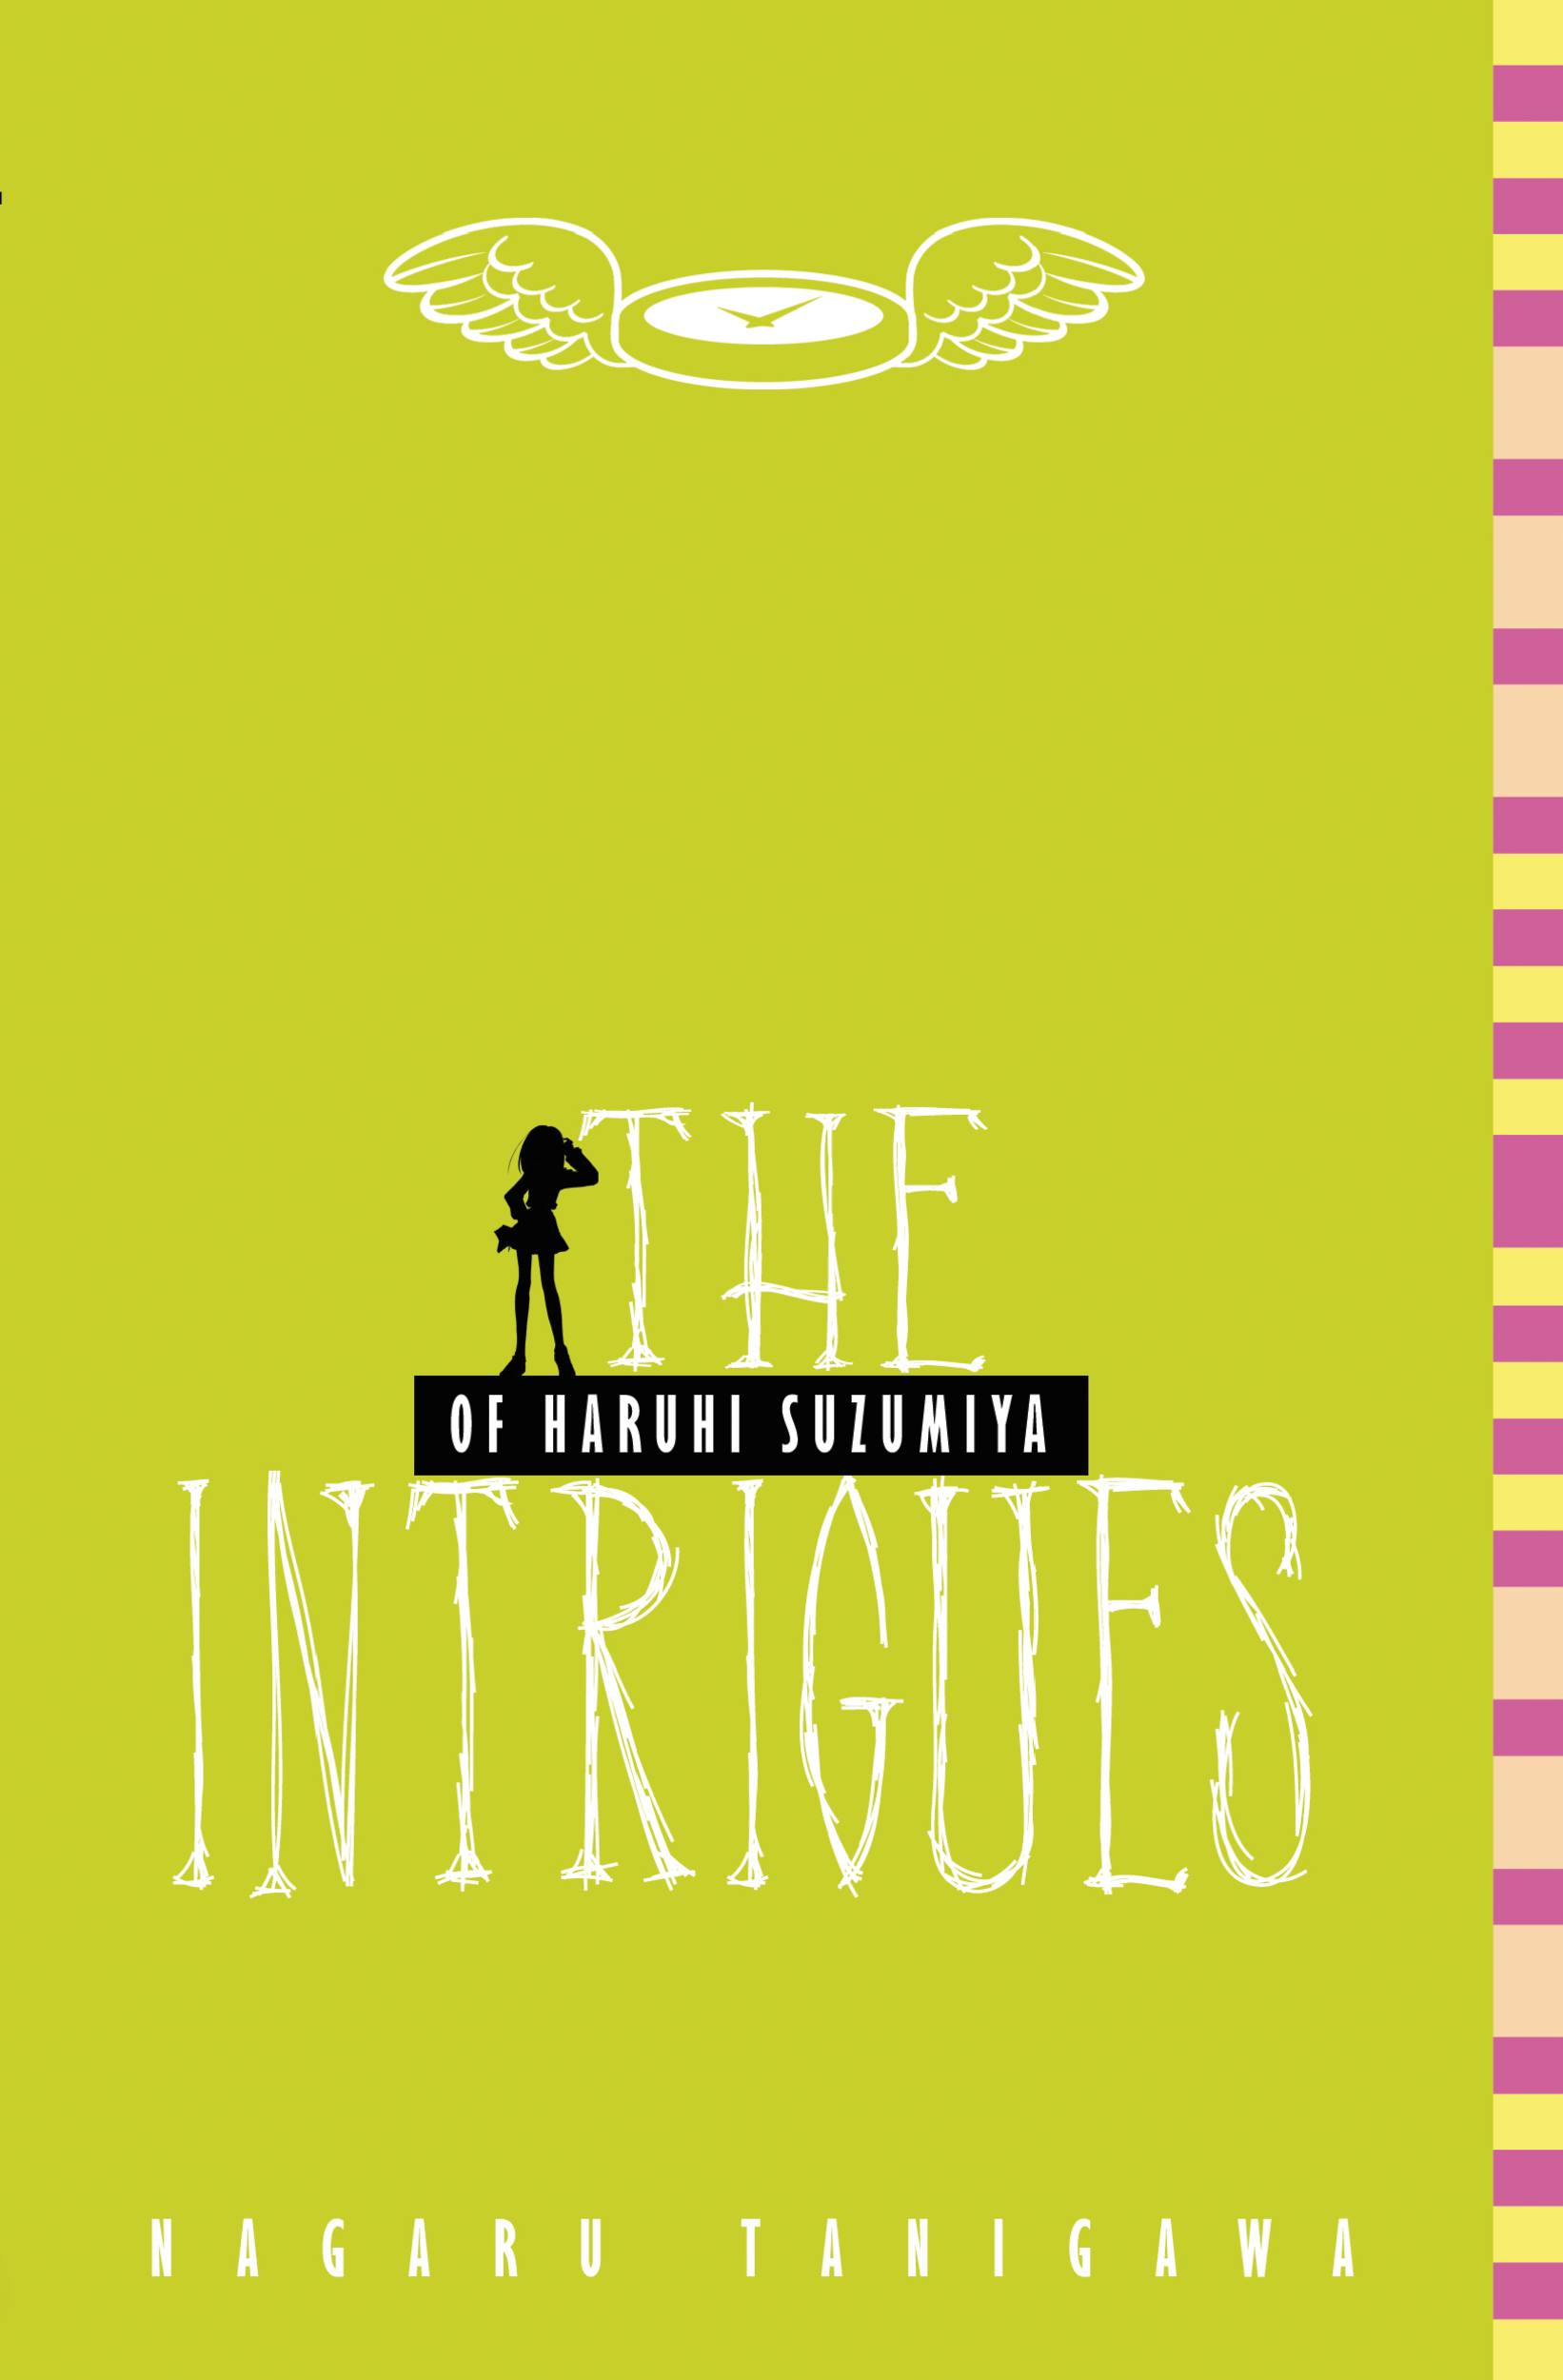 The Intrigues of Haruhi Suzumiya